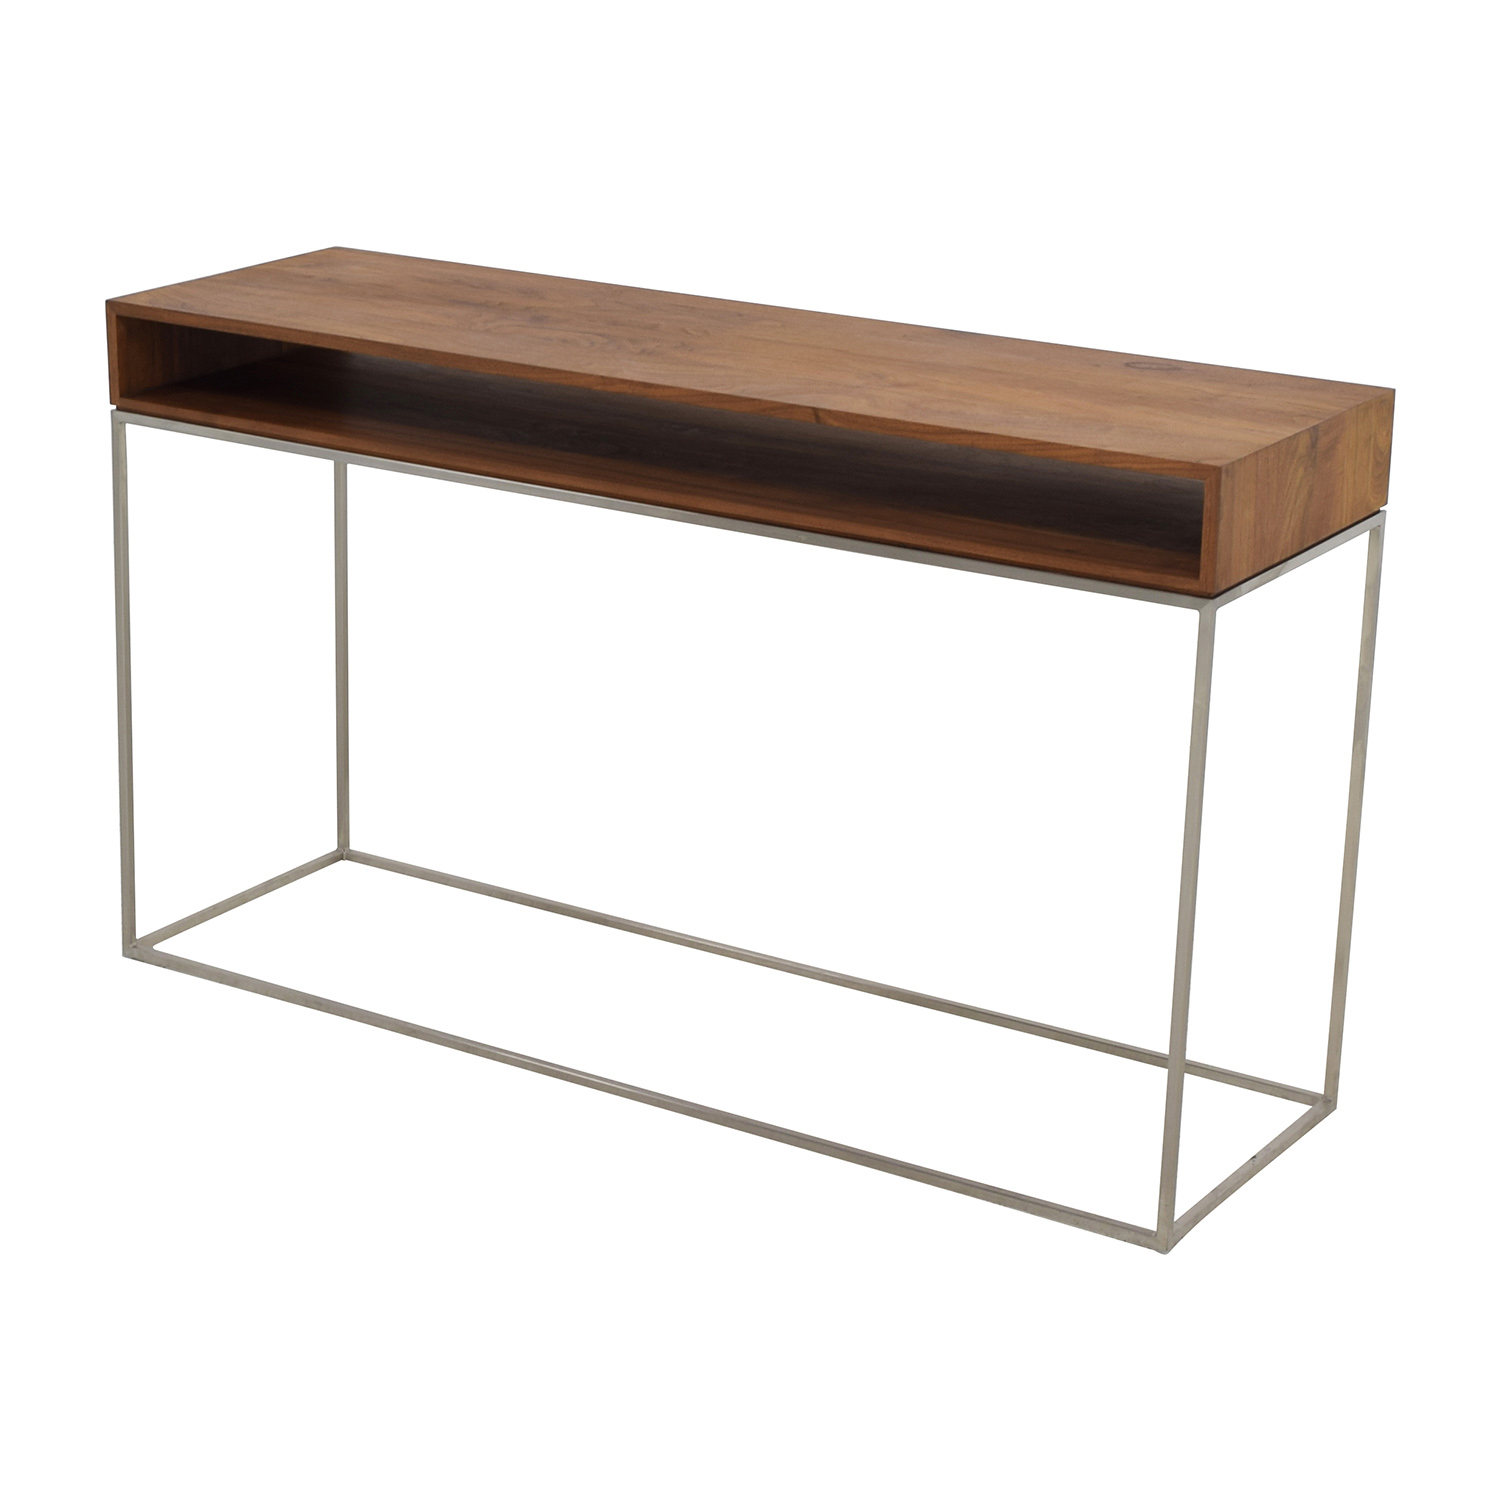 Wood And Metal Console Part - 29: ... Buy CB2 Wood And Metal Frame Console Table CB2 ...